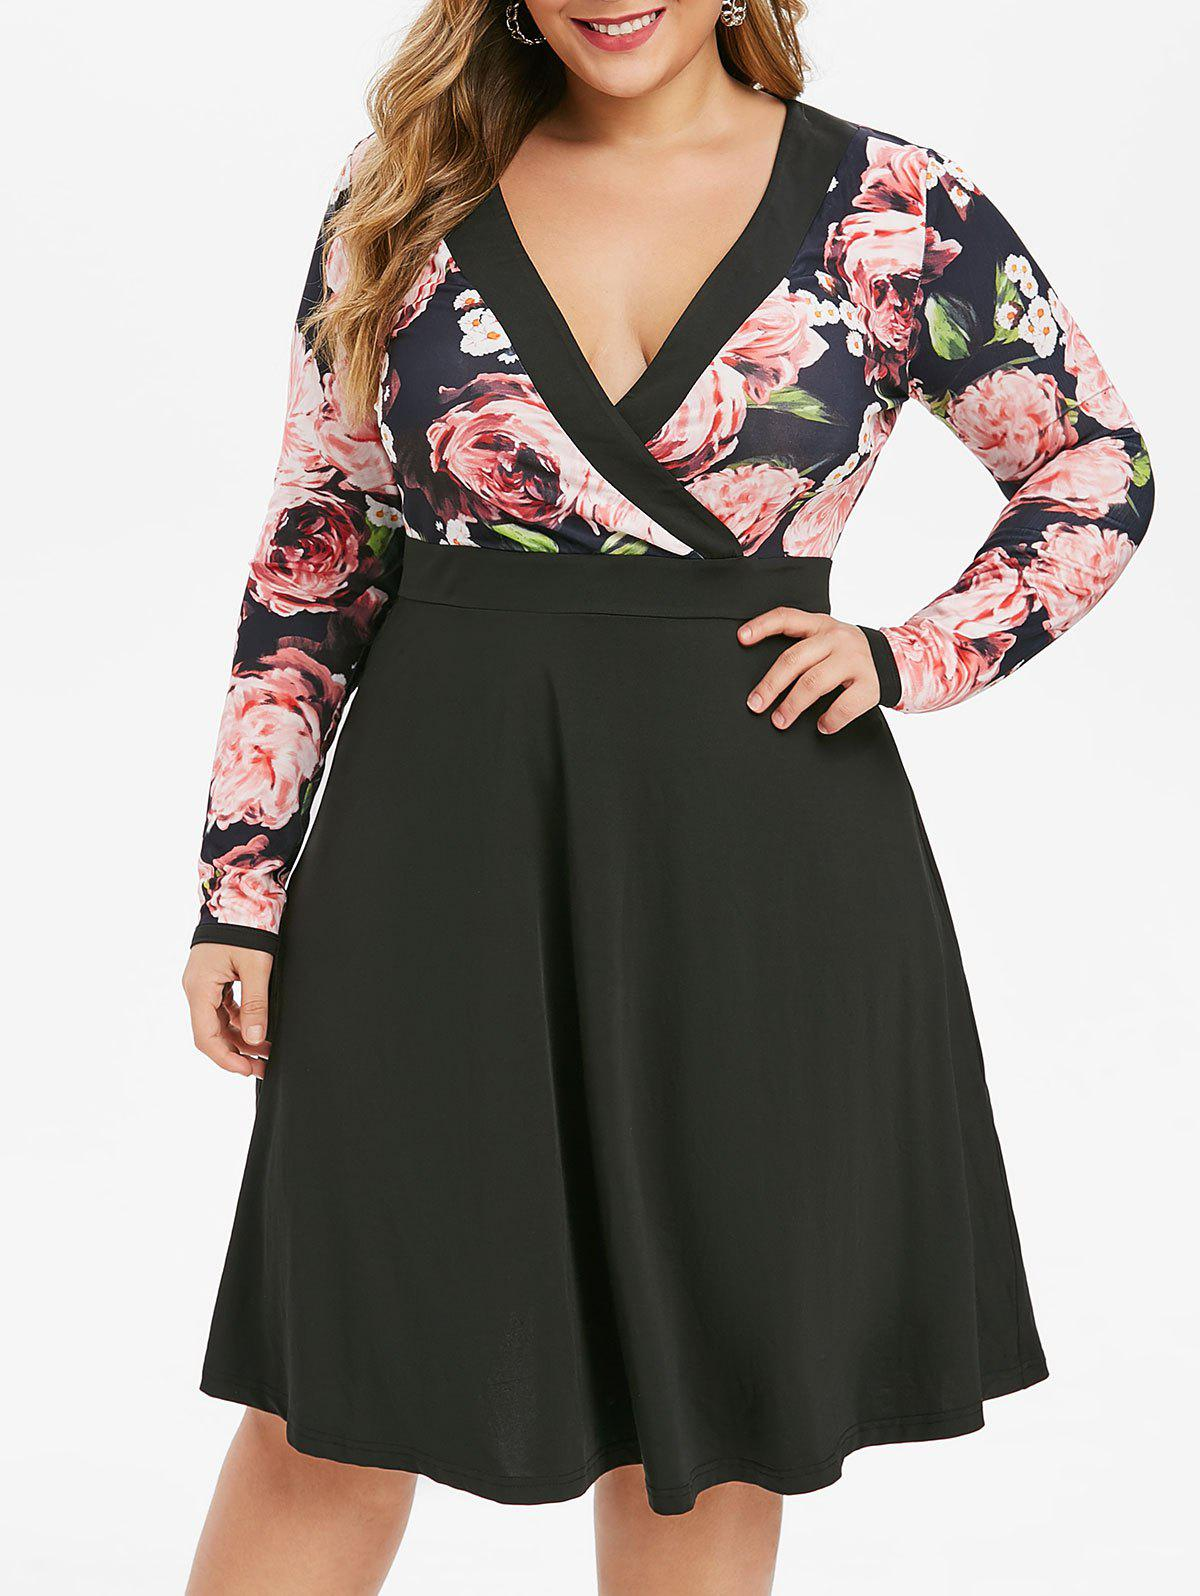 Store Plus Size Low Cut Floral Surplice Dress